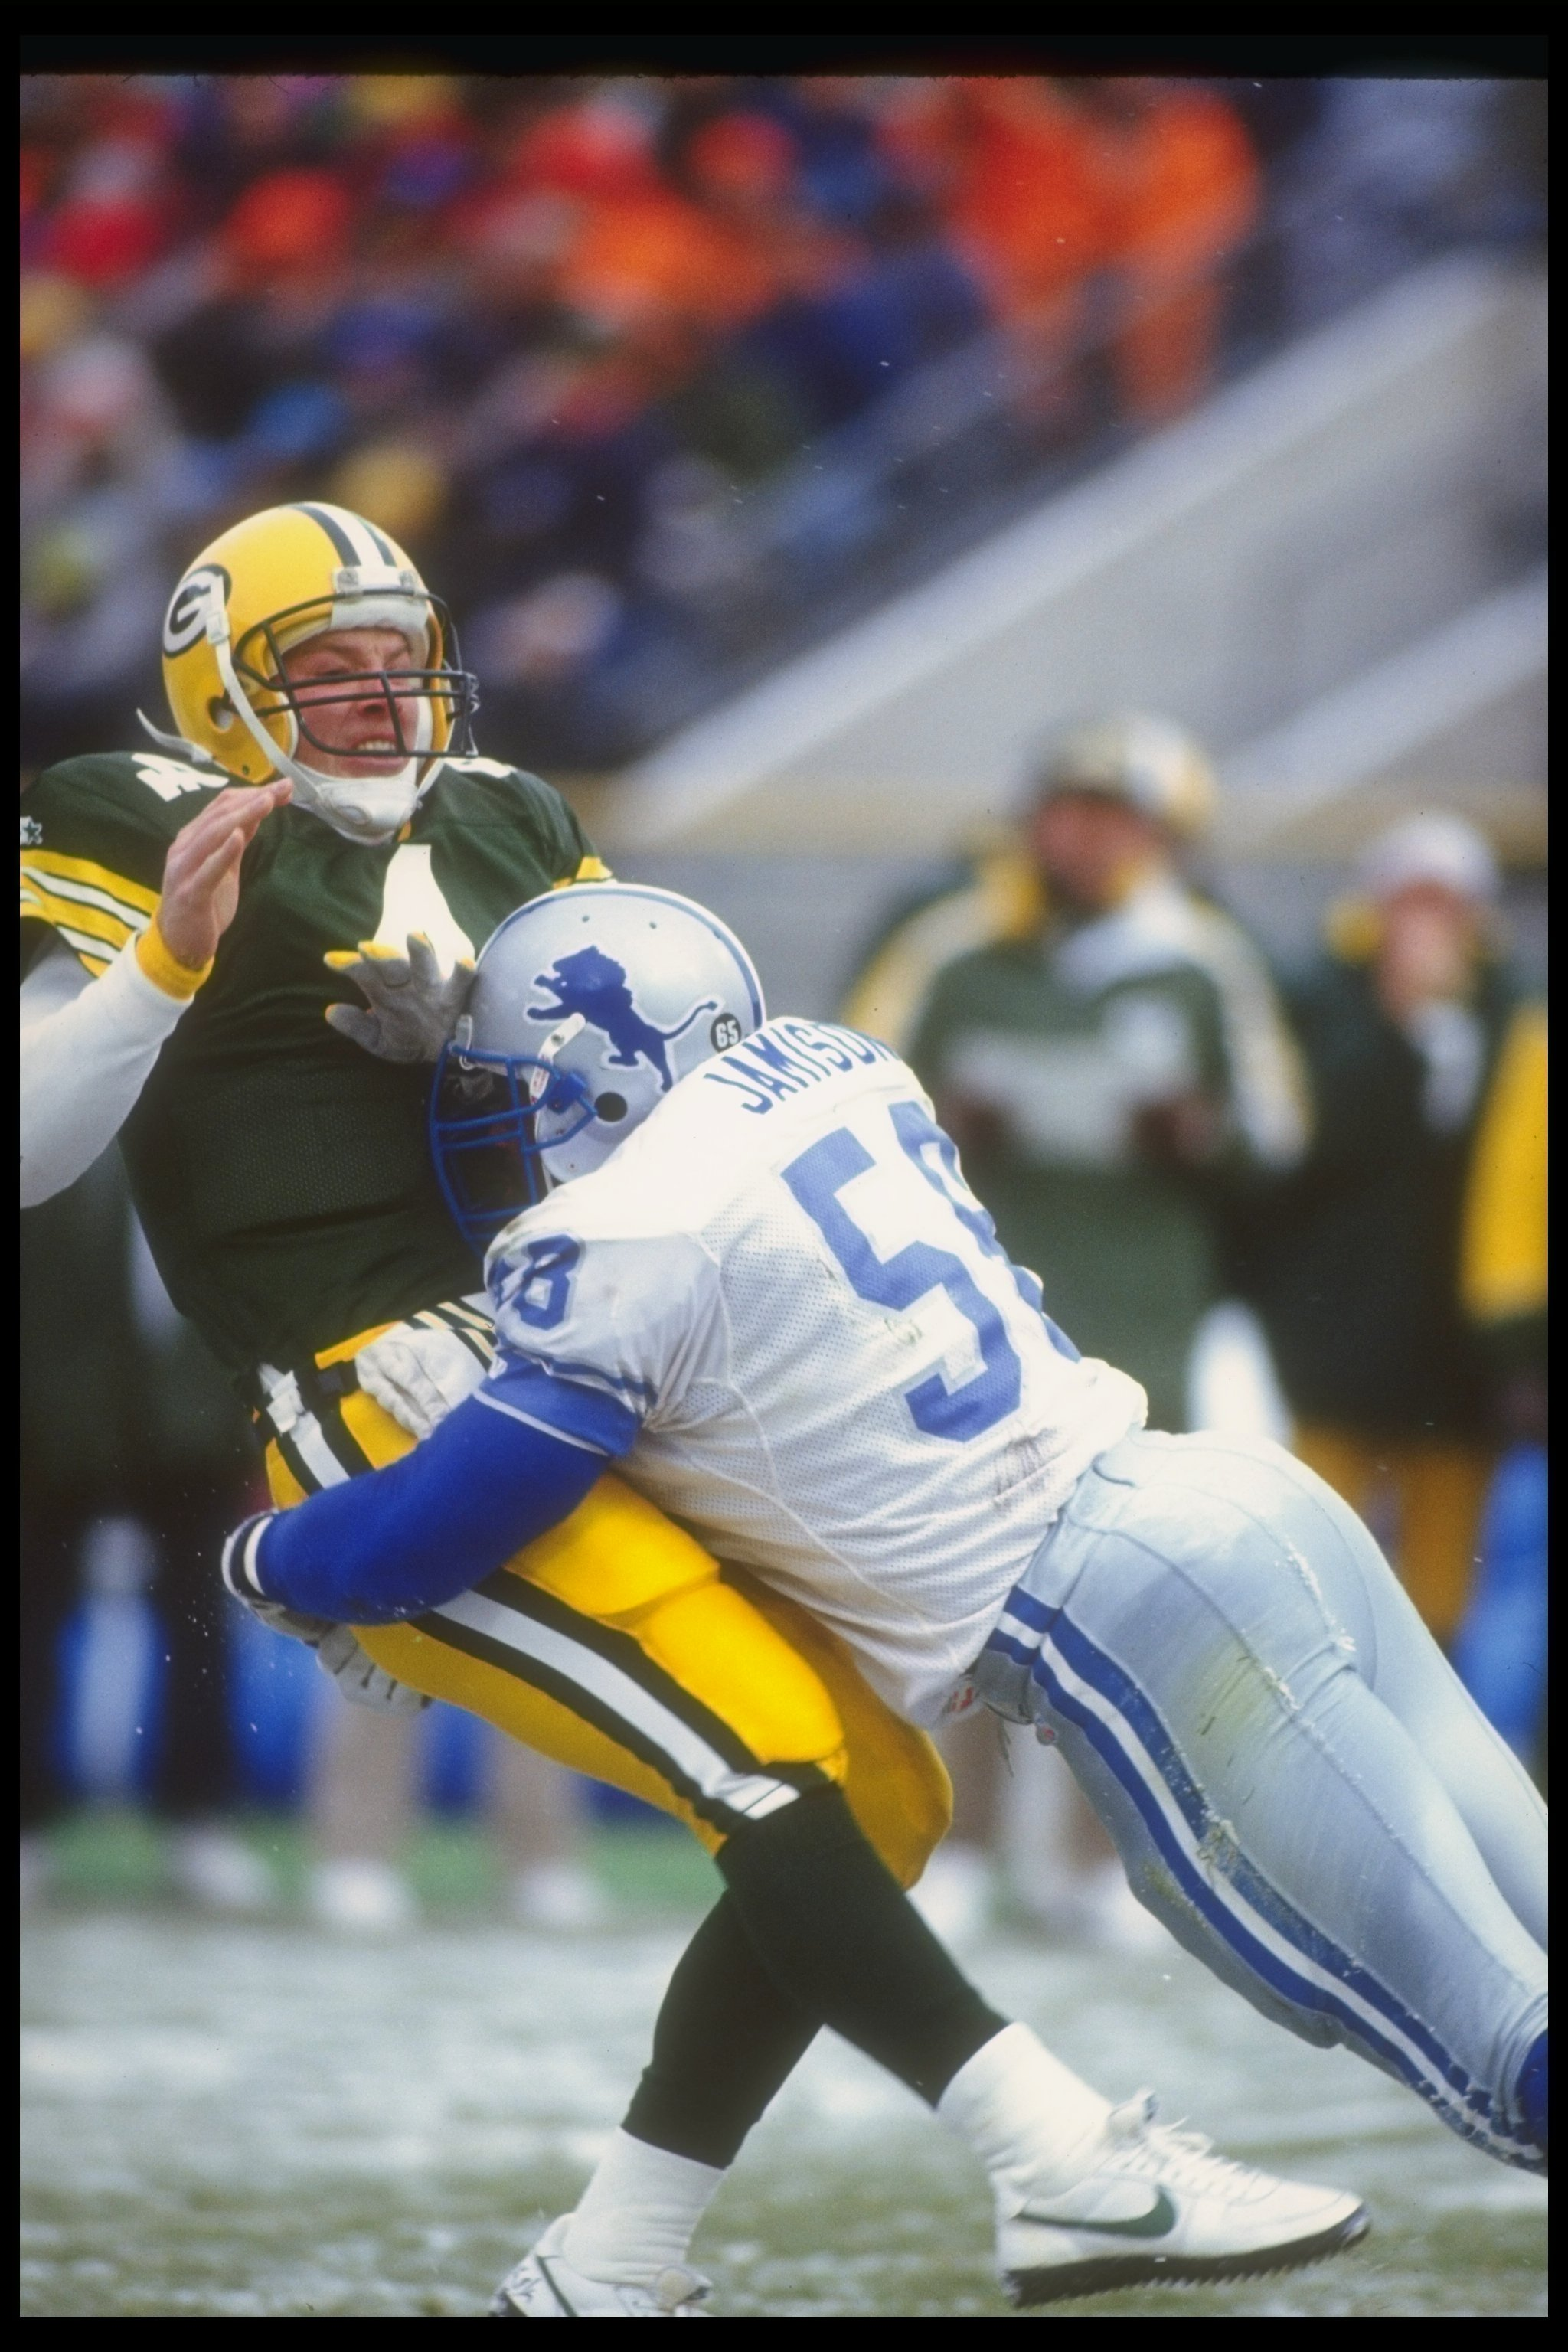 6 Dec 1992: Defensive lineman George Jamison of the Detroit Lions (right) sacks Green Bay Packers quarterback Brett Favre during a game at Milwaukee County Stadium in Milwaukee, Wisconsin. The Packers won the game, 38-10.